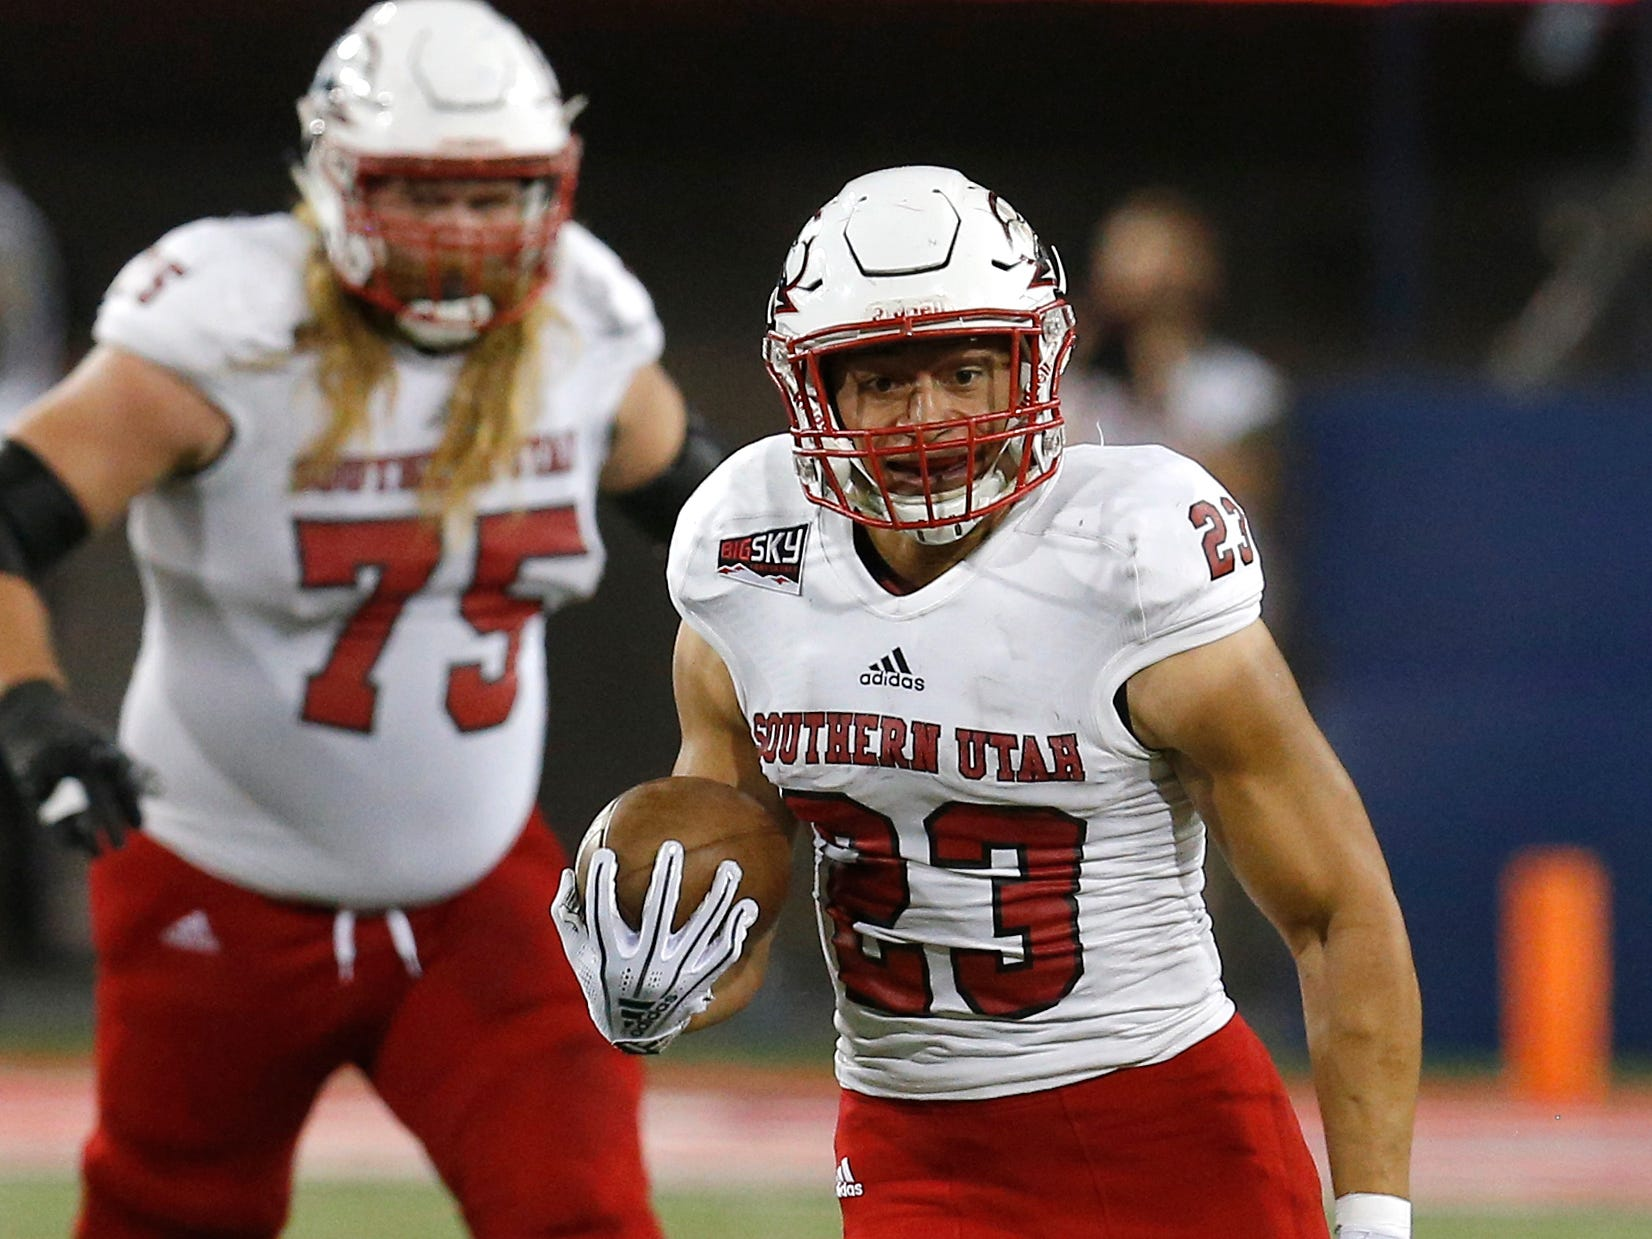 Southern Utah running back James Felila (23) in the first half during an NCAA college football game against Arizona, Saturday, Sept. 15, 2018, in Tucson, Ariz. (AP Photo/Rick Scuteri)